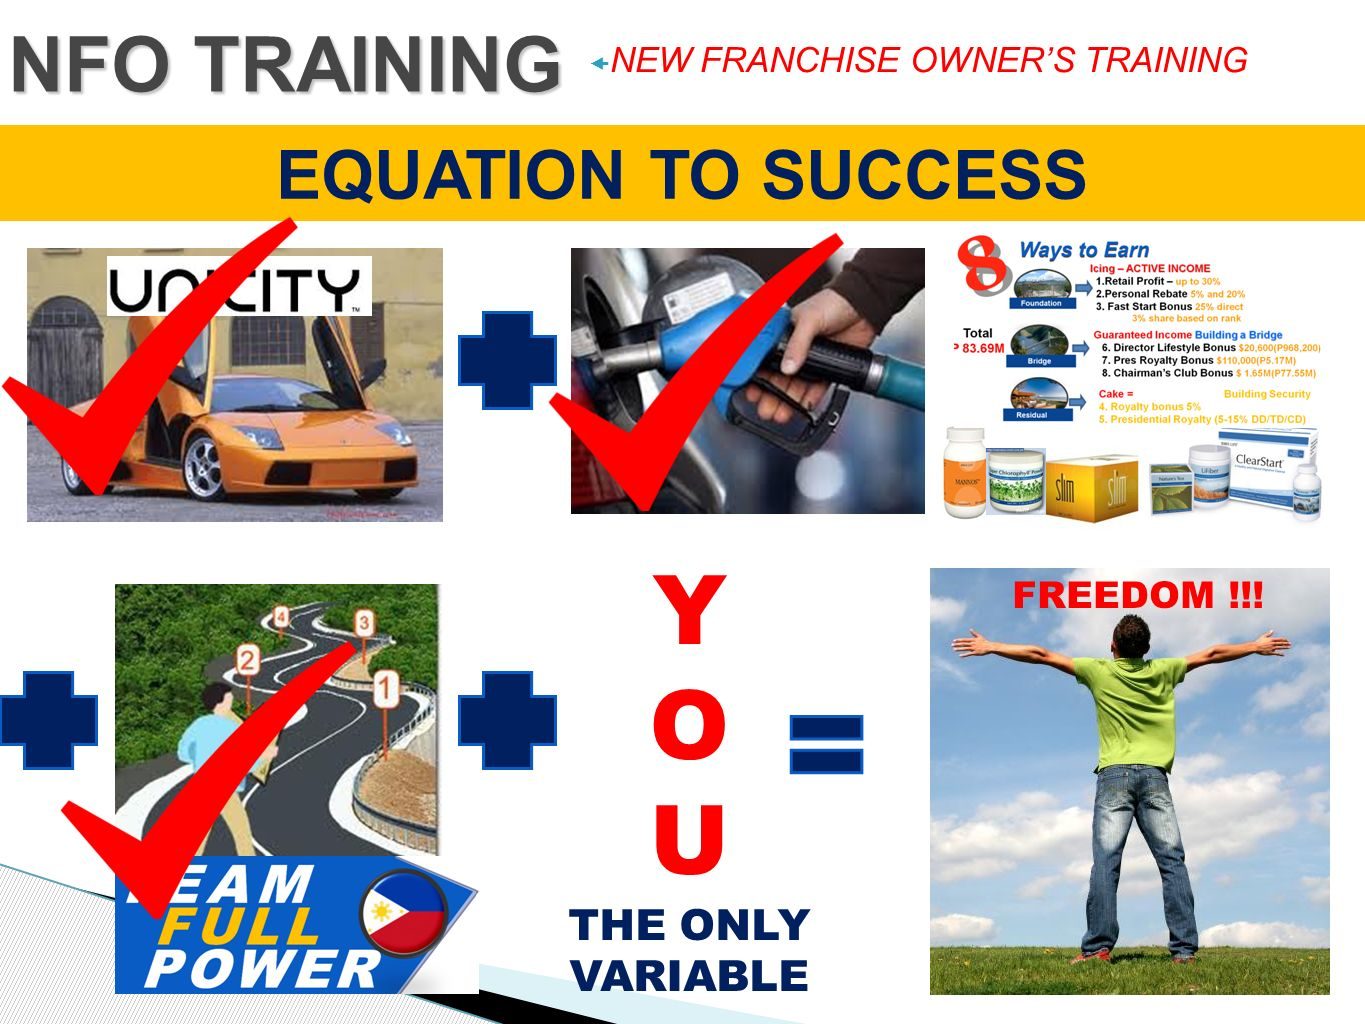 Y O U NFO TRAINING EQUATION TO SUCCESS THE ONLY VARIABLE FREEDOM !!!